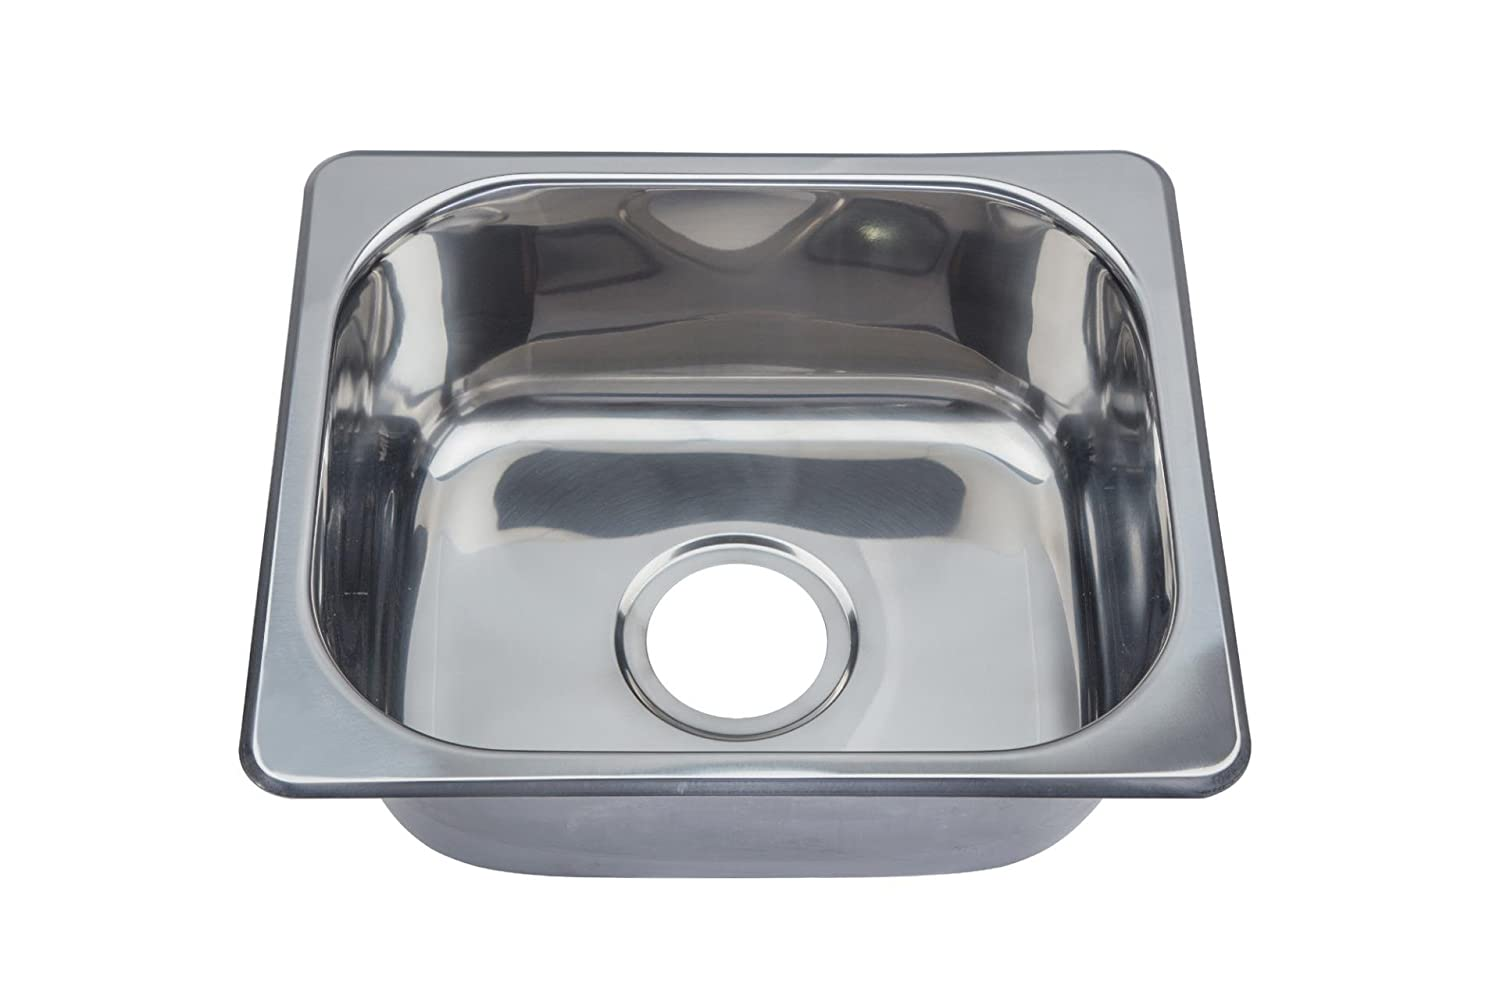 Hygenic Small Bowl TopMount Inset Stainless Steel Kitchen Sink (A11 ...